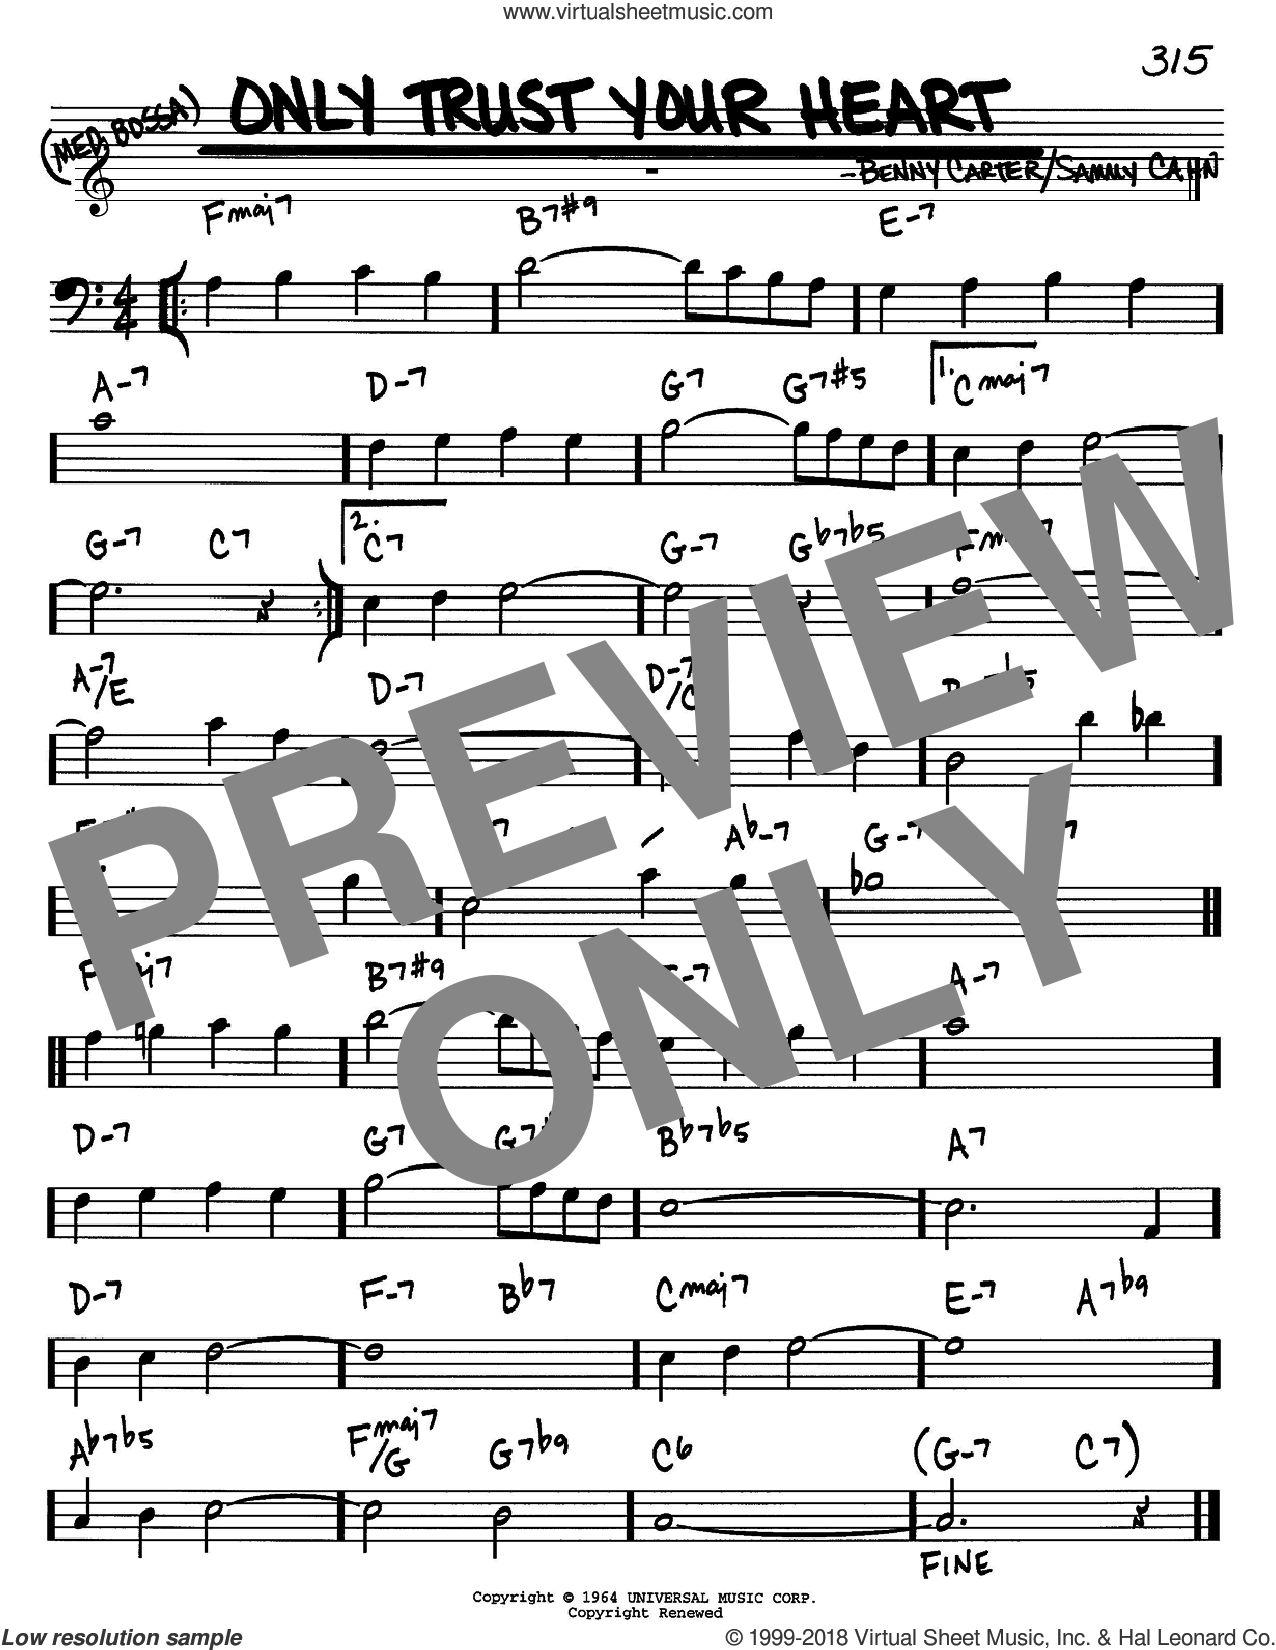 Only Trust Your Heart sheet music for voice and other instruments (Bass Clef ) by Benny Carter